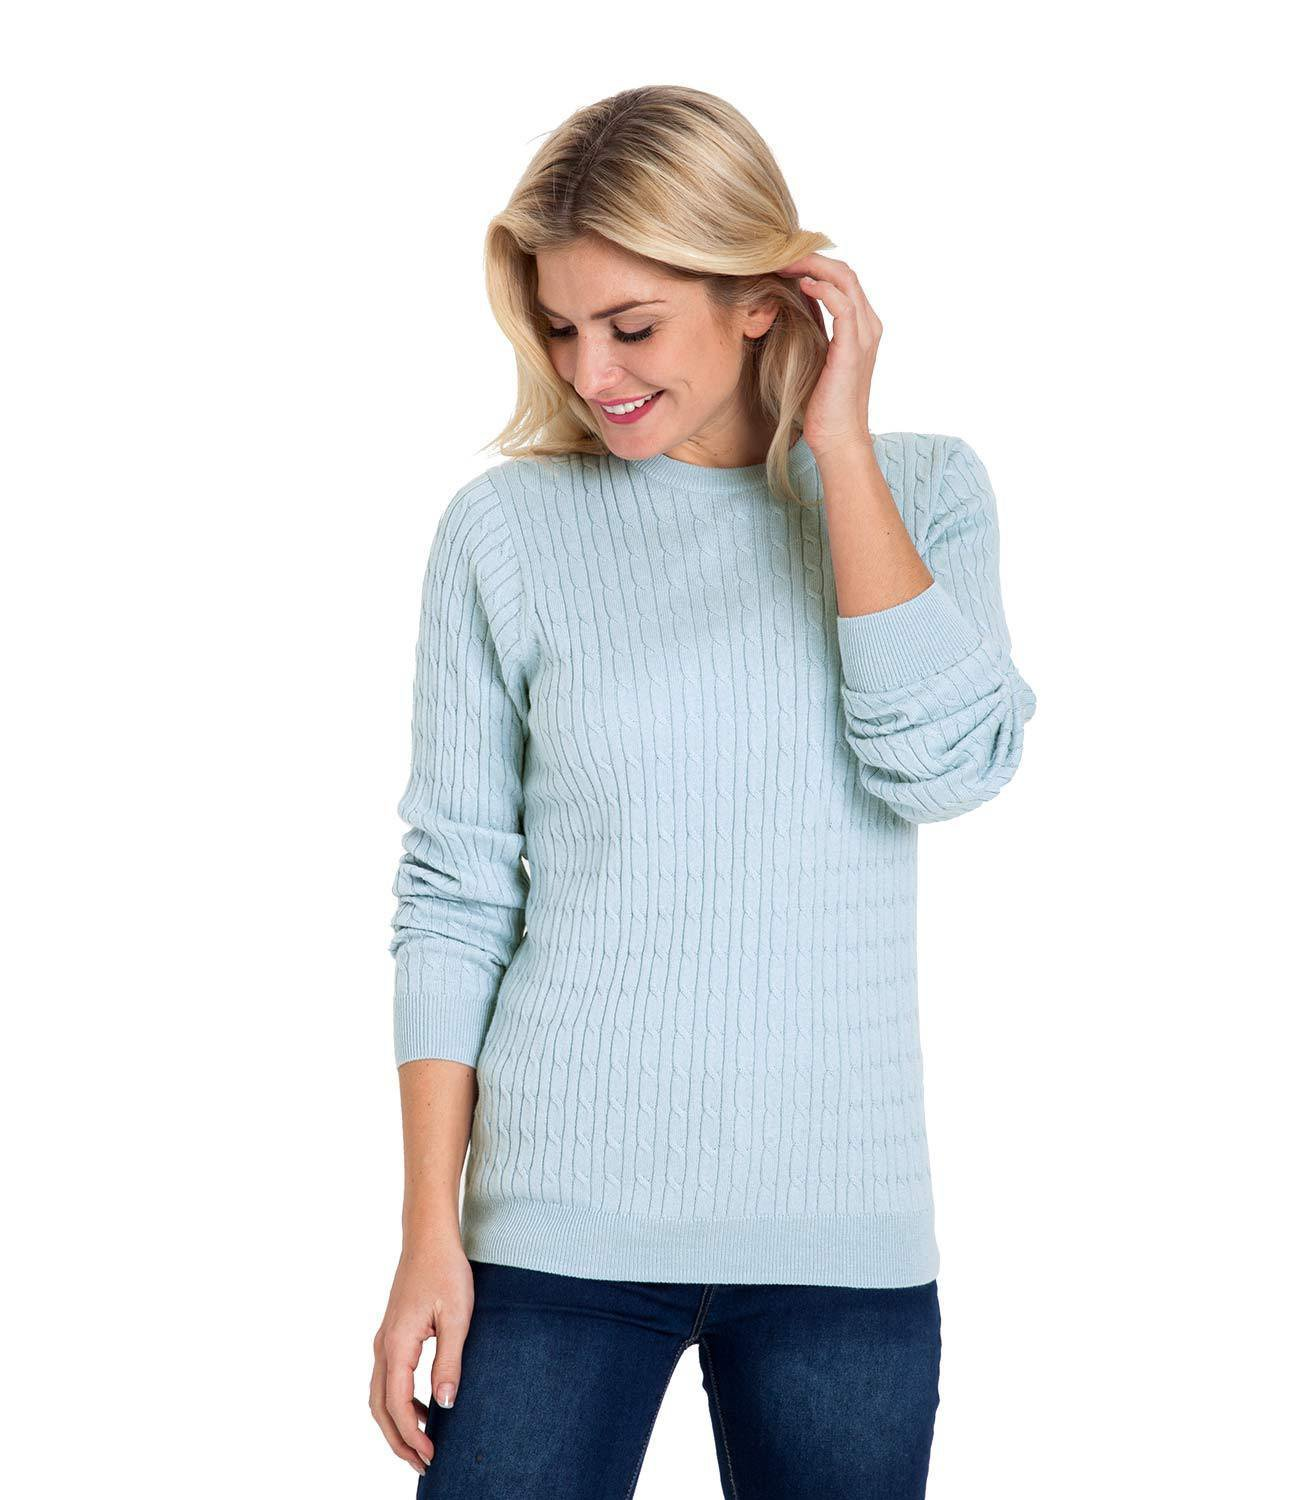 WoolOvers Womens Cashmere and Cotton Cable Crew Neck Sweater Jumper Knitwear